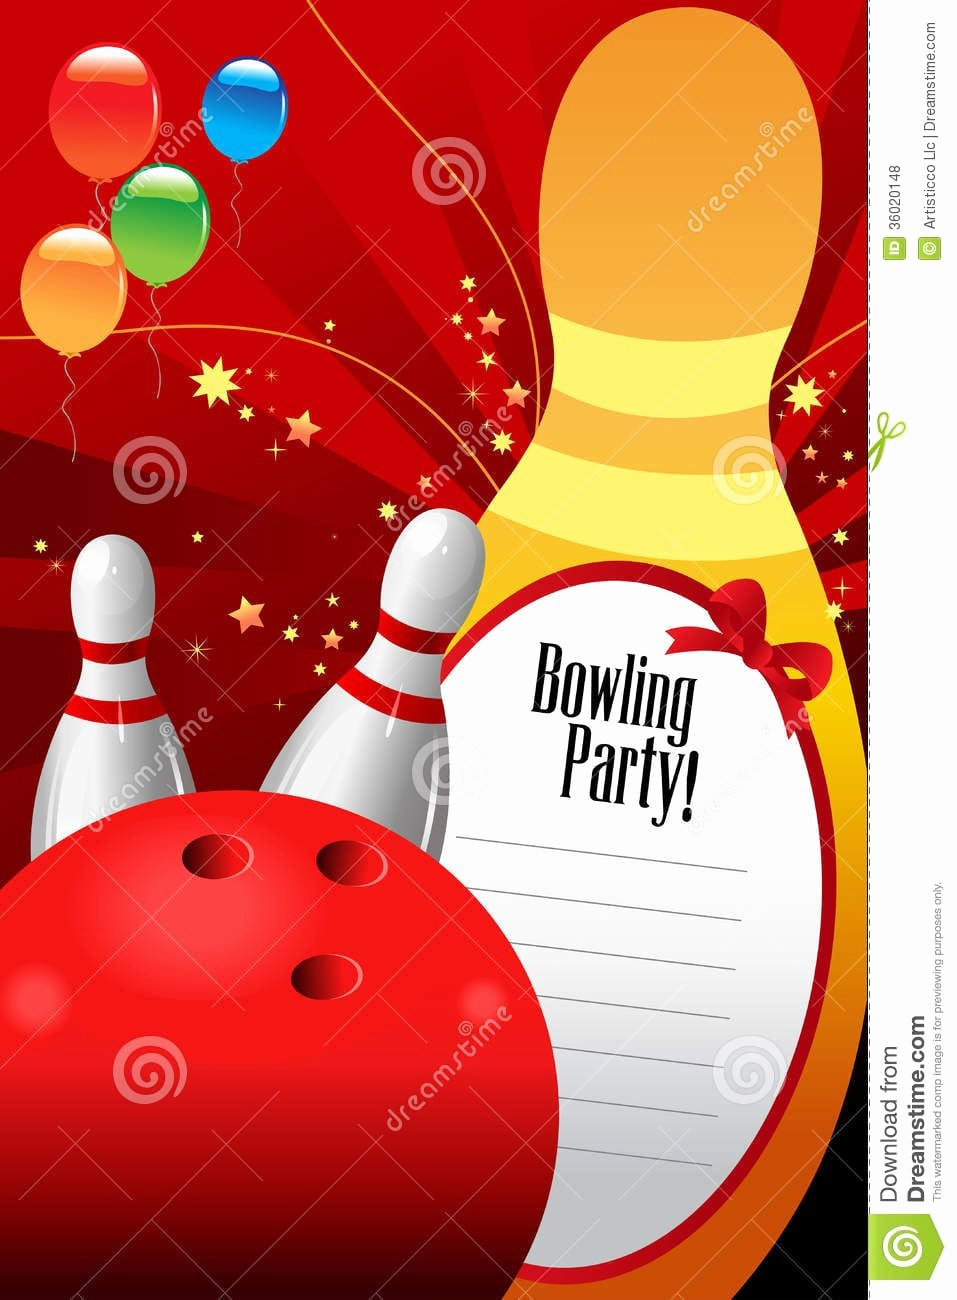 Bowling Party Invitations Templates Free Inspirational Free Bowling Invitation Template